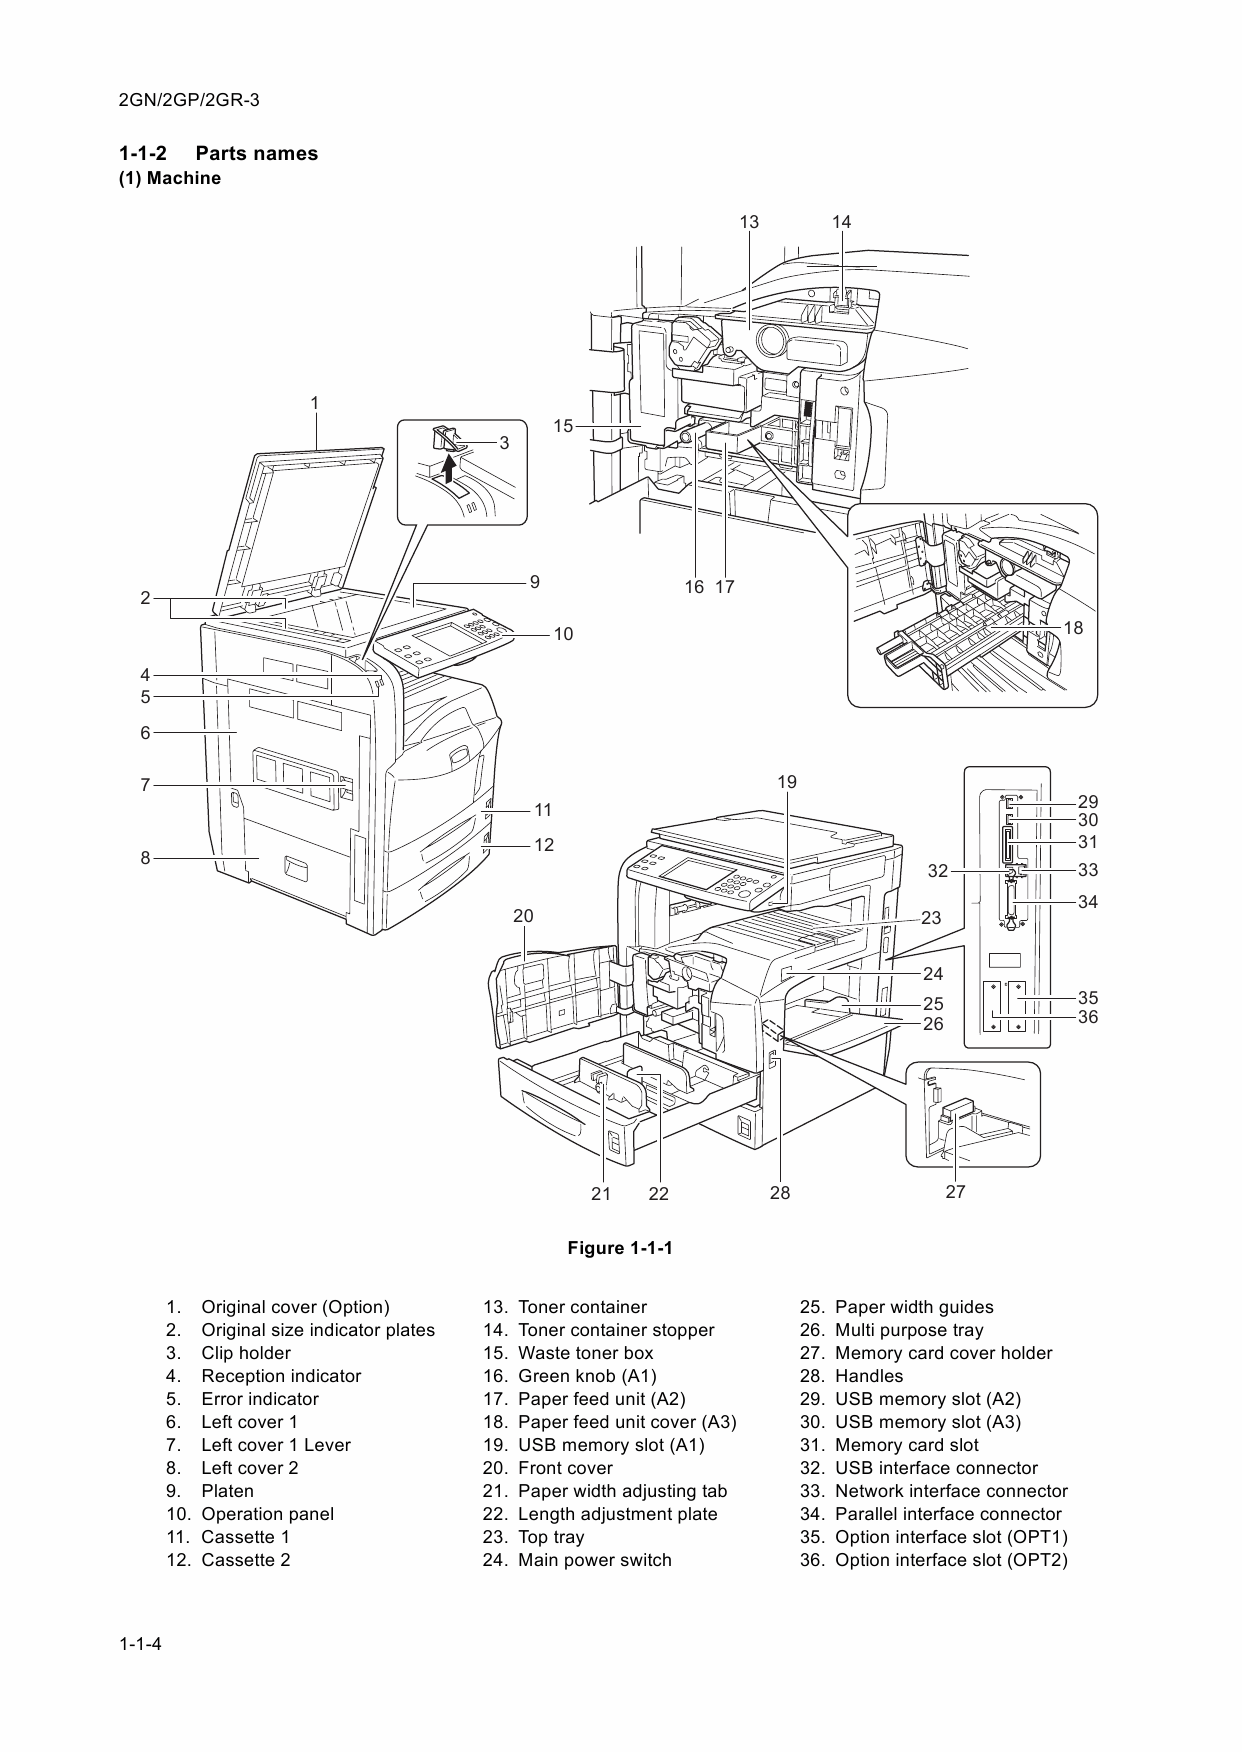 KYOCERA Copier KM-3050 4050 5050 Service Manual